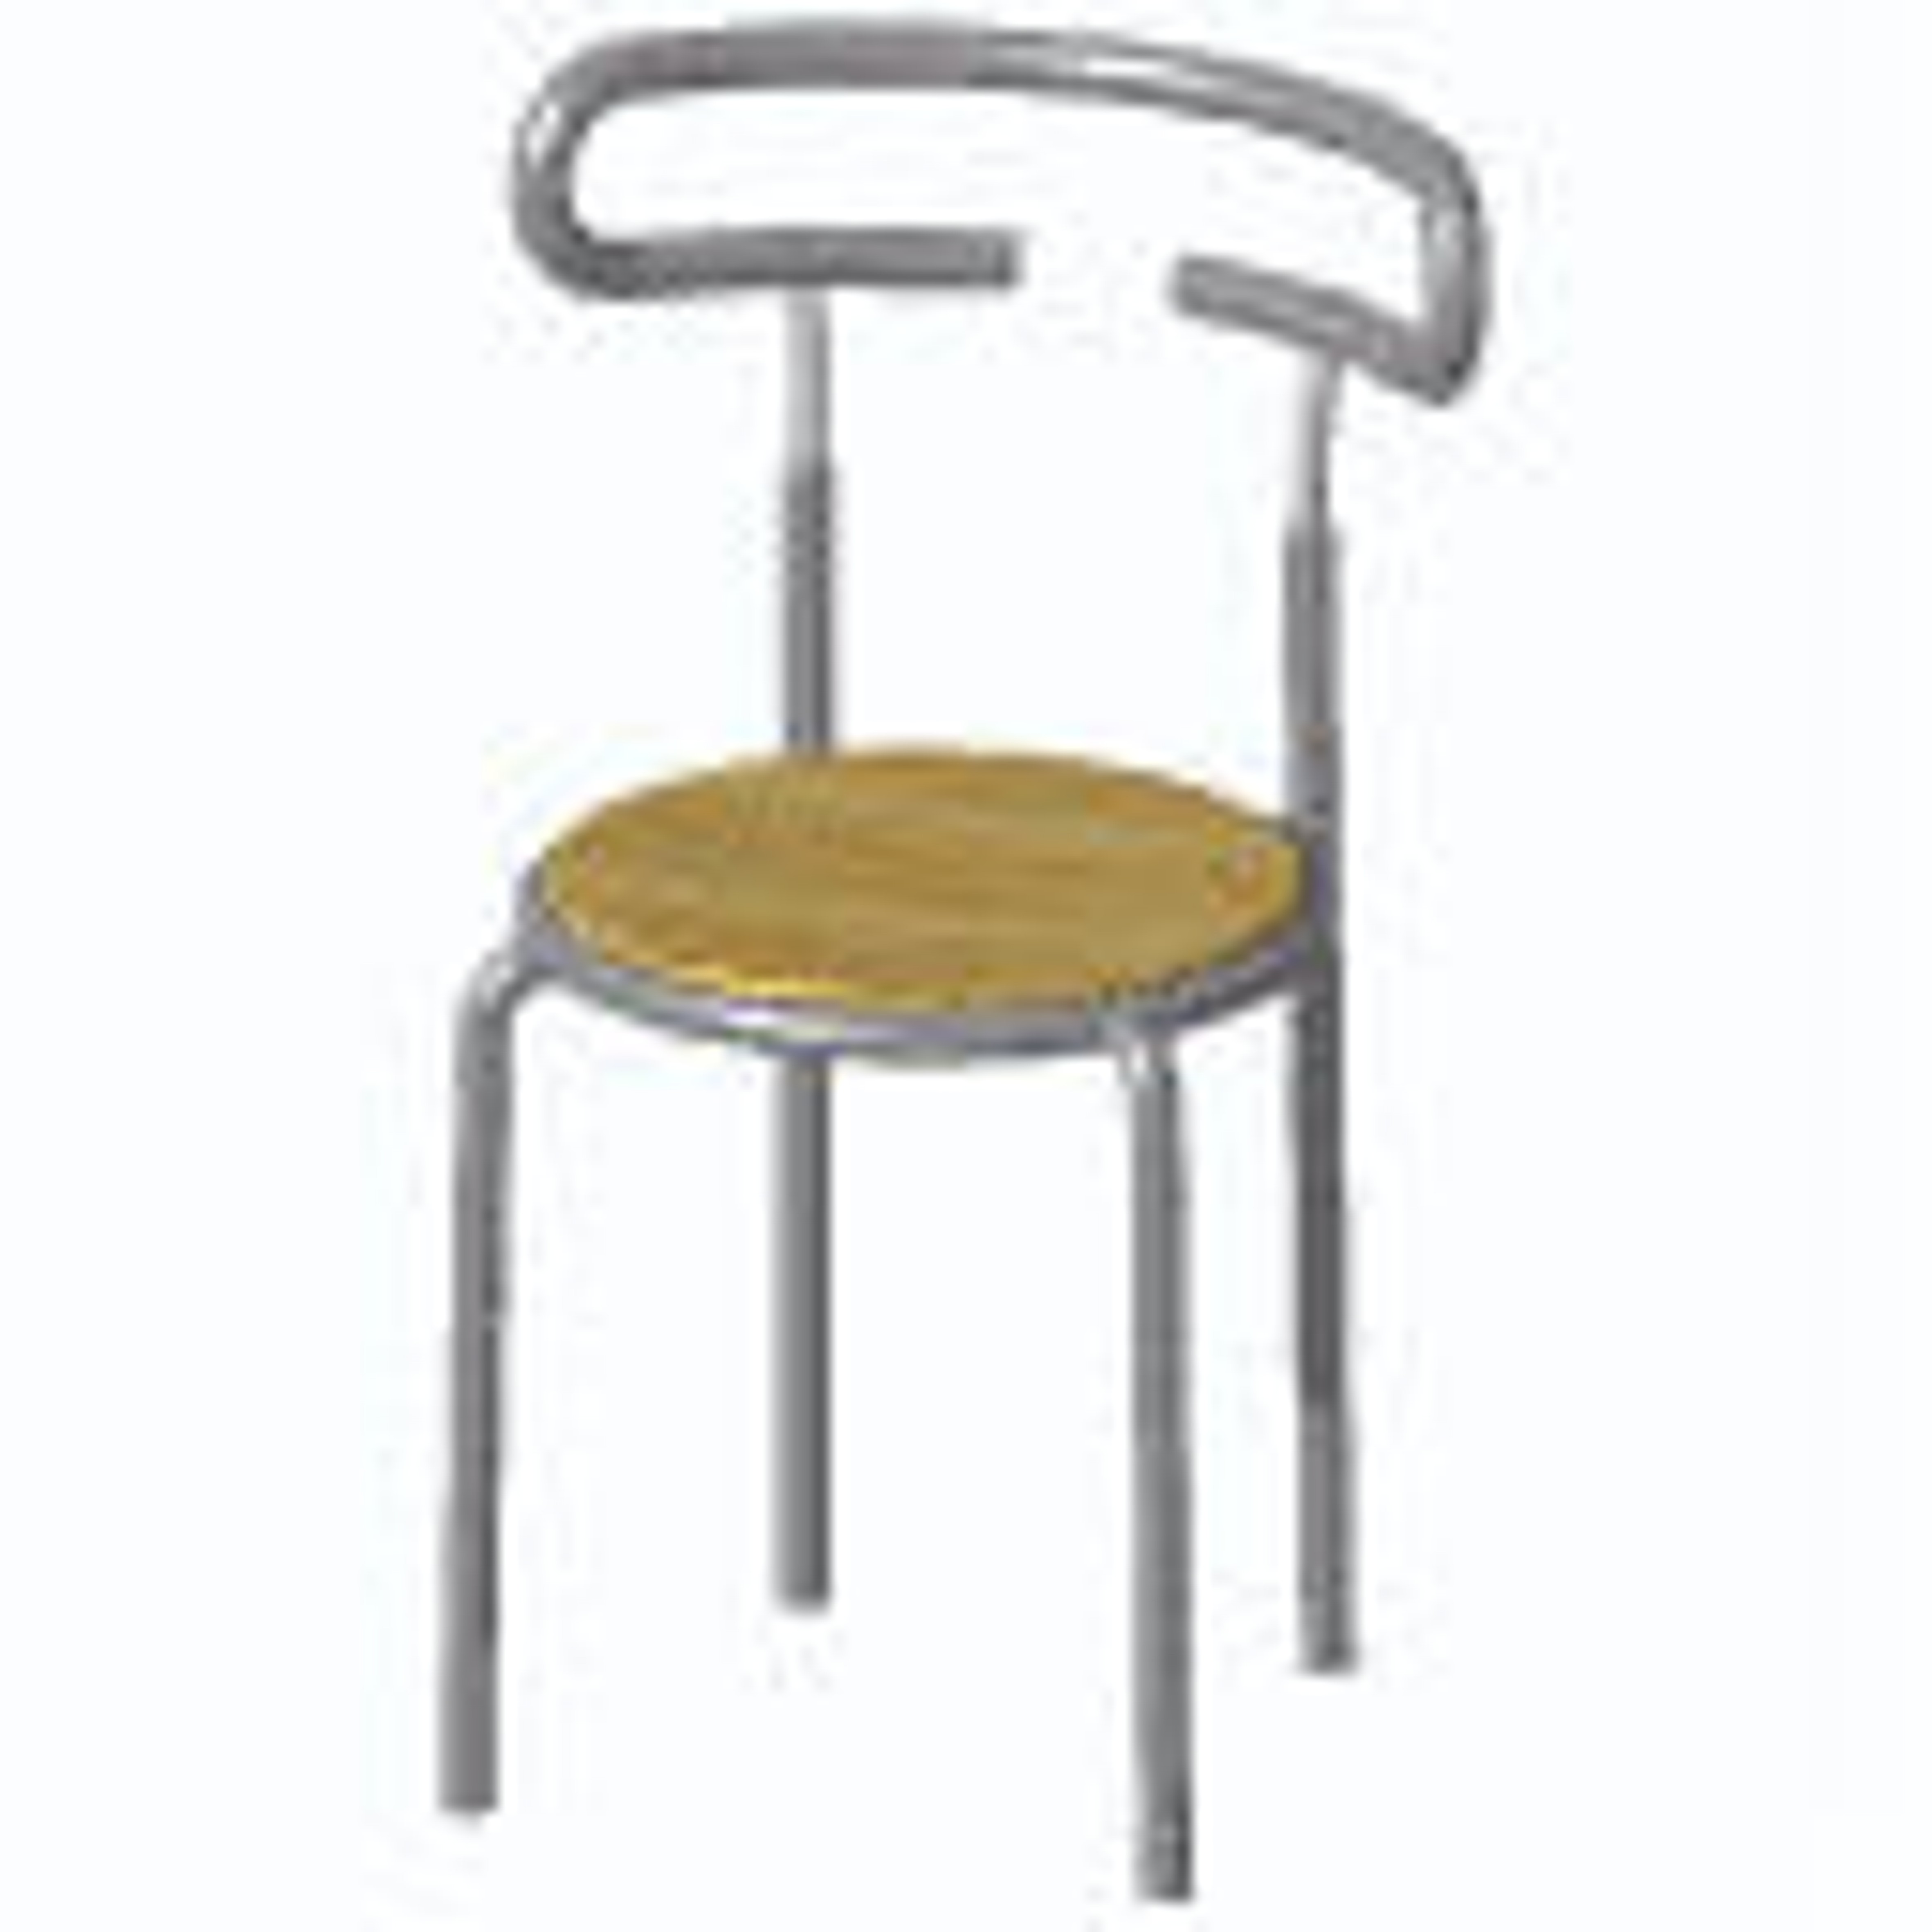 ArchiCAD Object Library 11